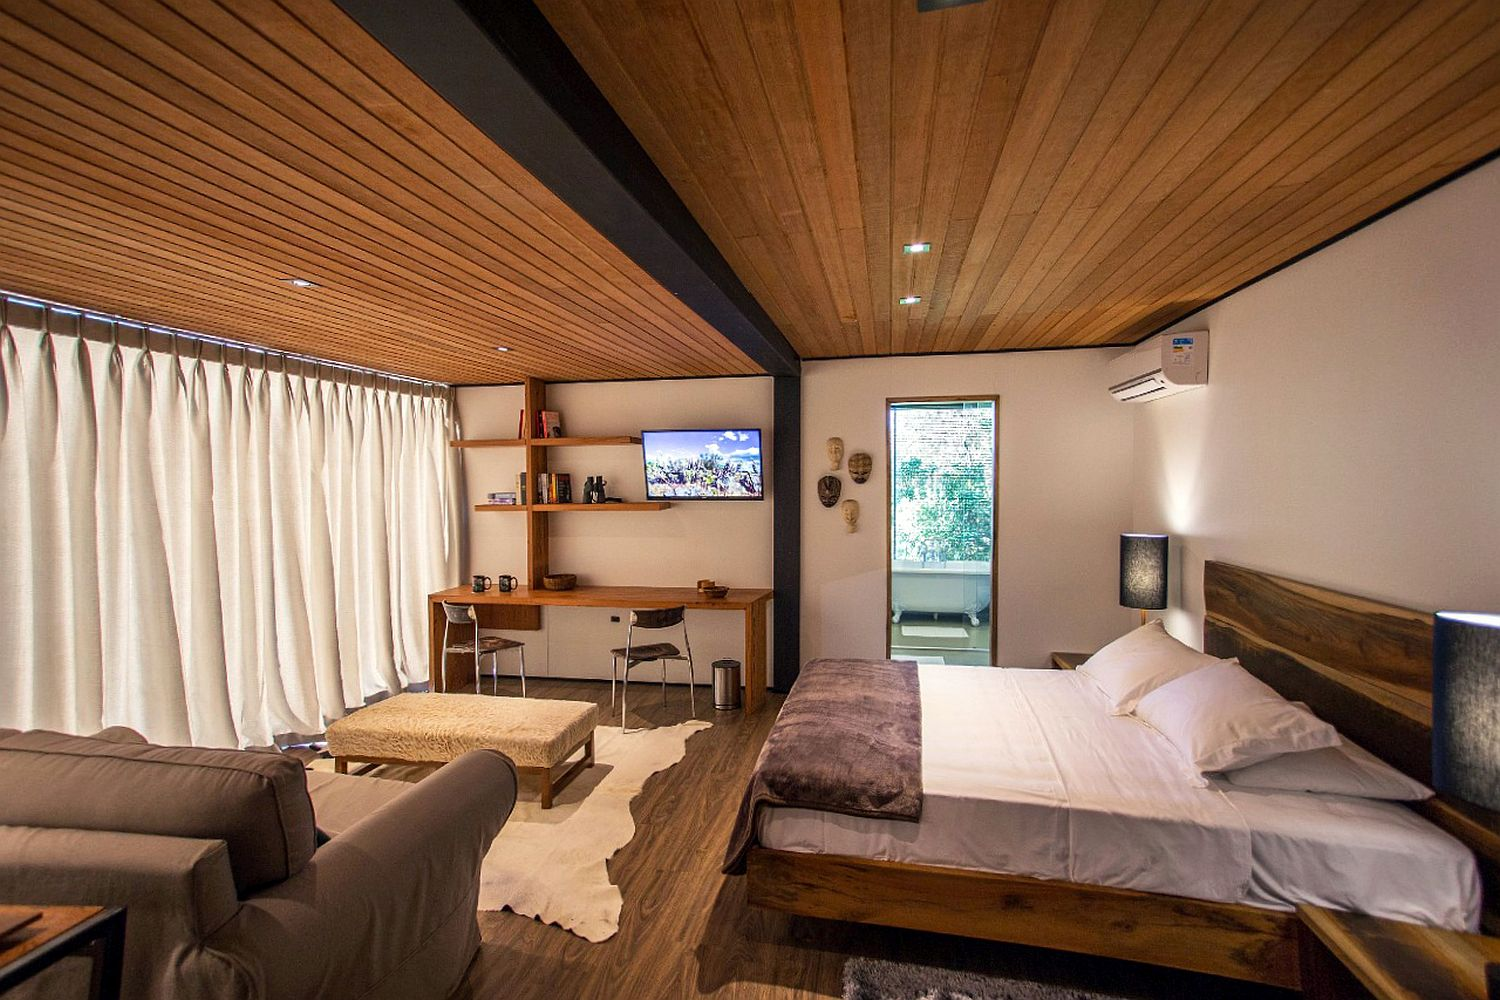 Cozy-and-relaxing-bedroom-of-the-Brazilian-cabin-can-offer-complete-privacy-when-needed